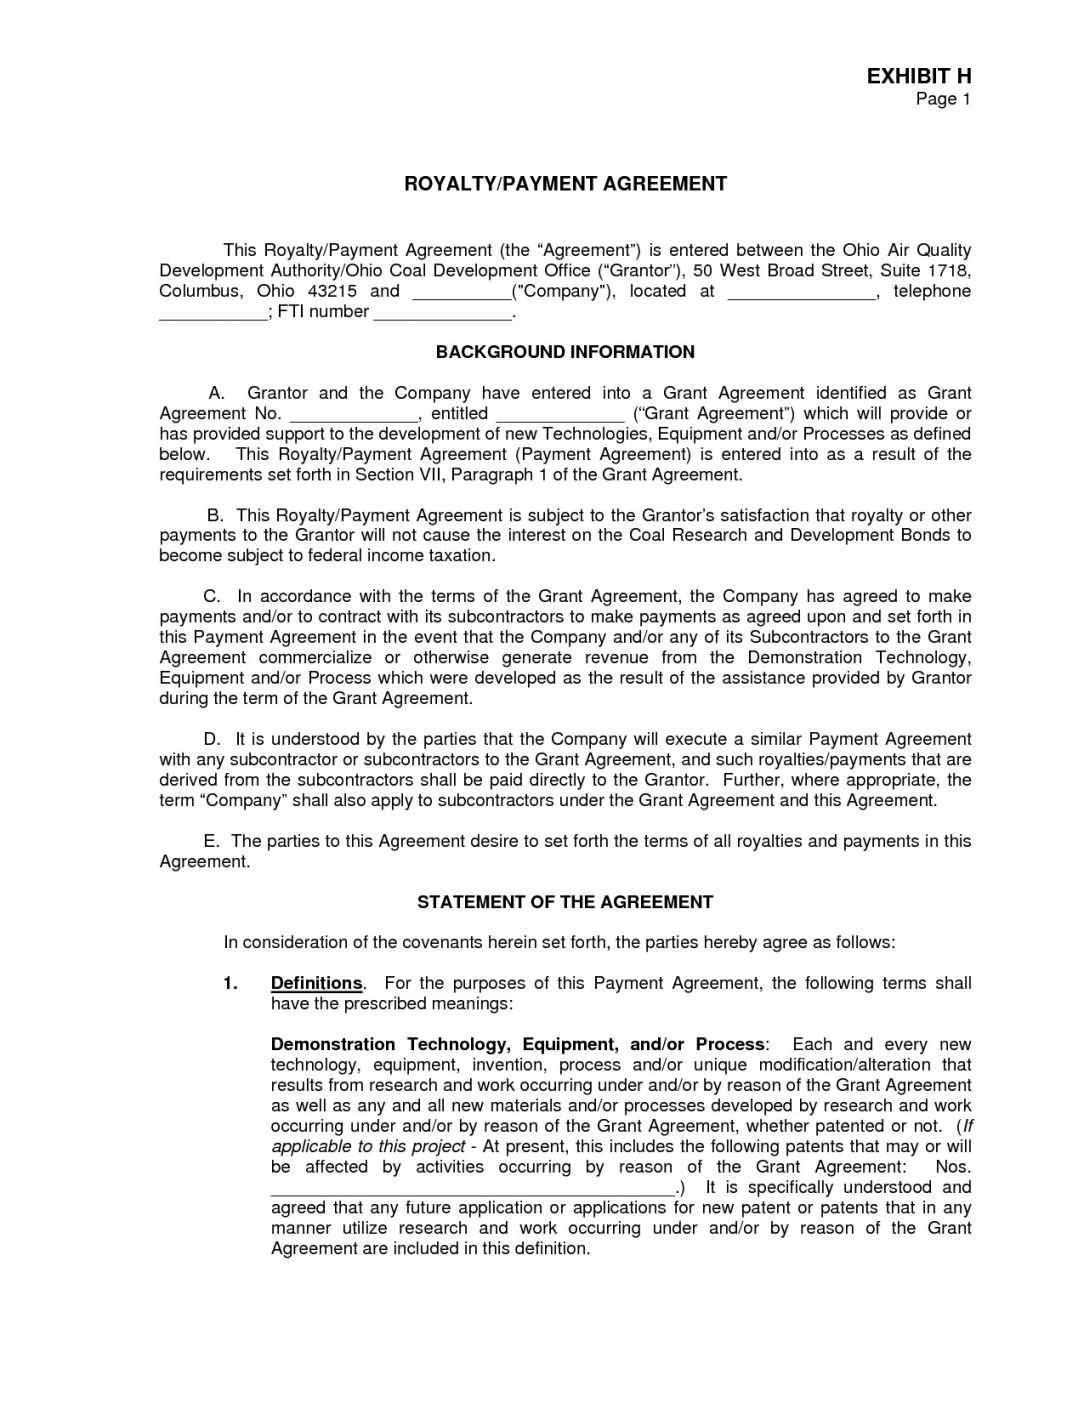 free agreement template royalty 0012207 for software licensing royalty financing agreement template word